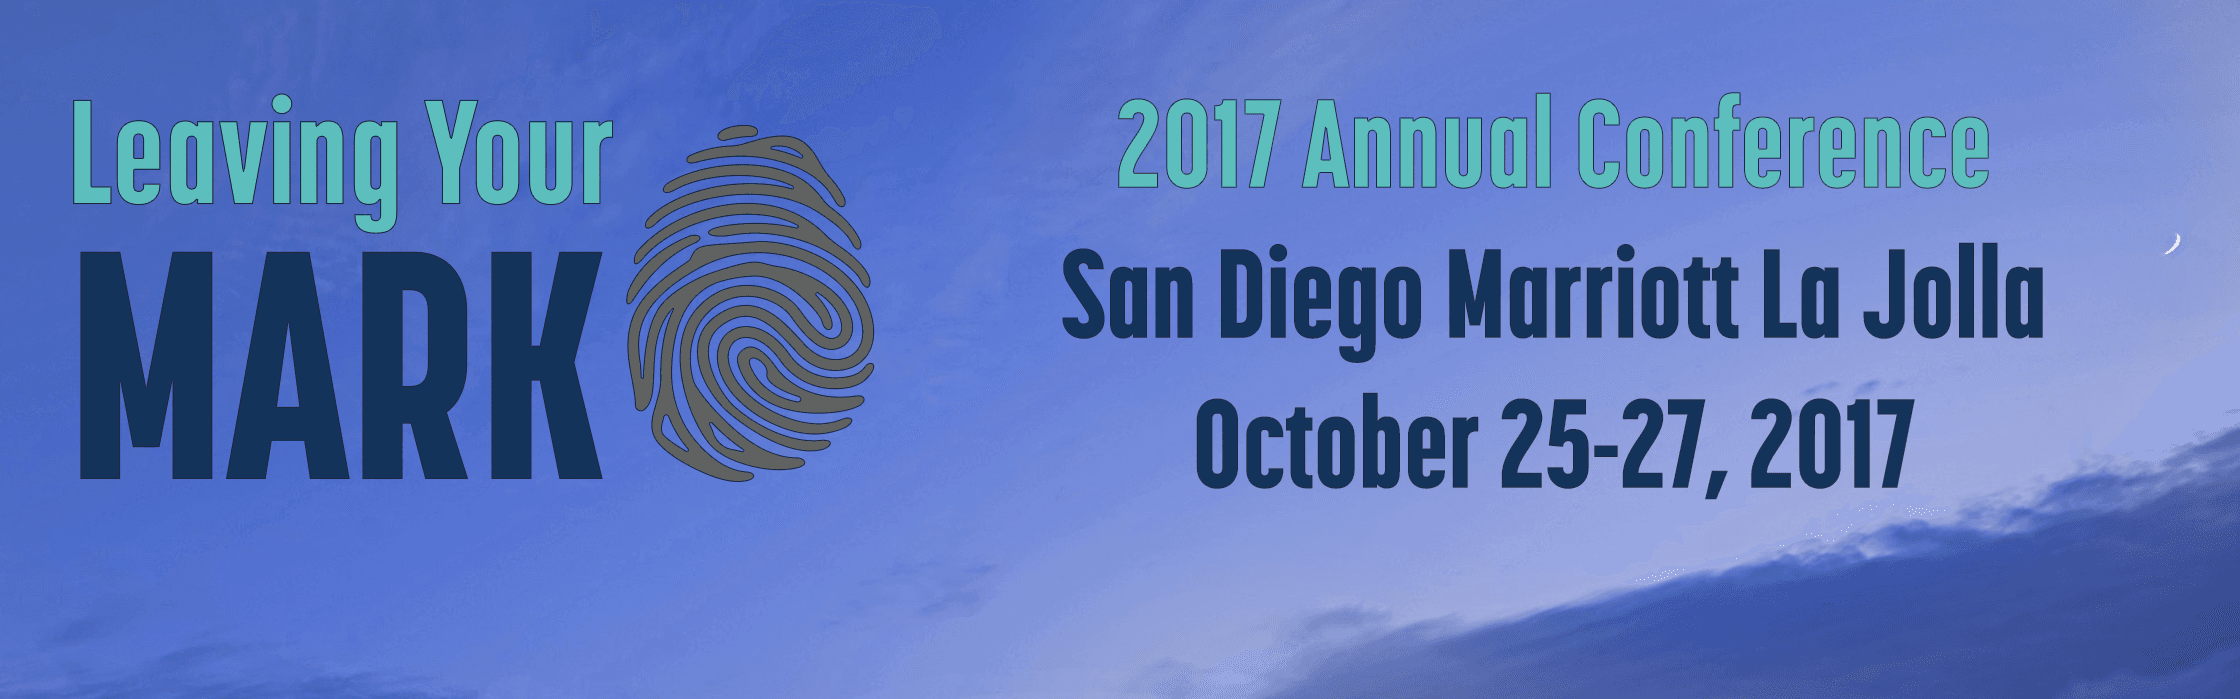 Save the date for the 2017 MMASC Annual Conference in San Diego! Click here for more info.